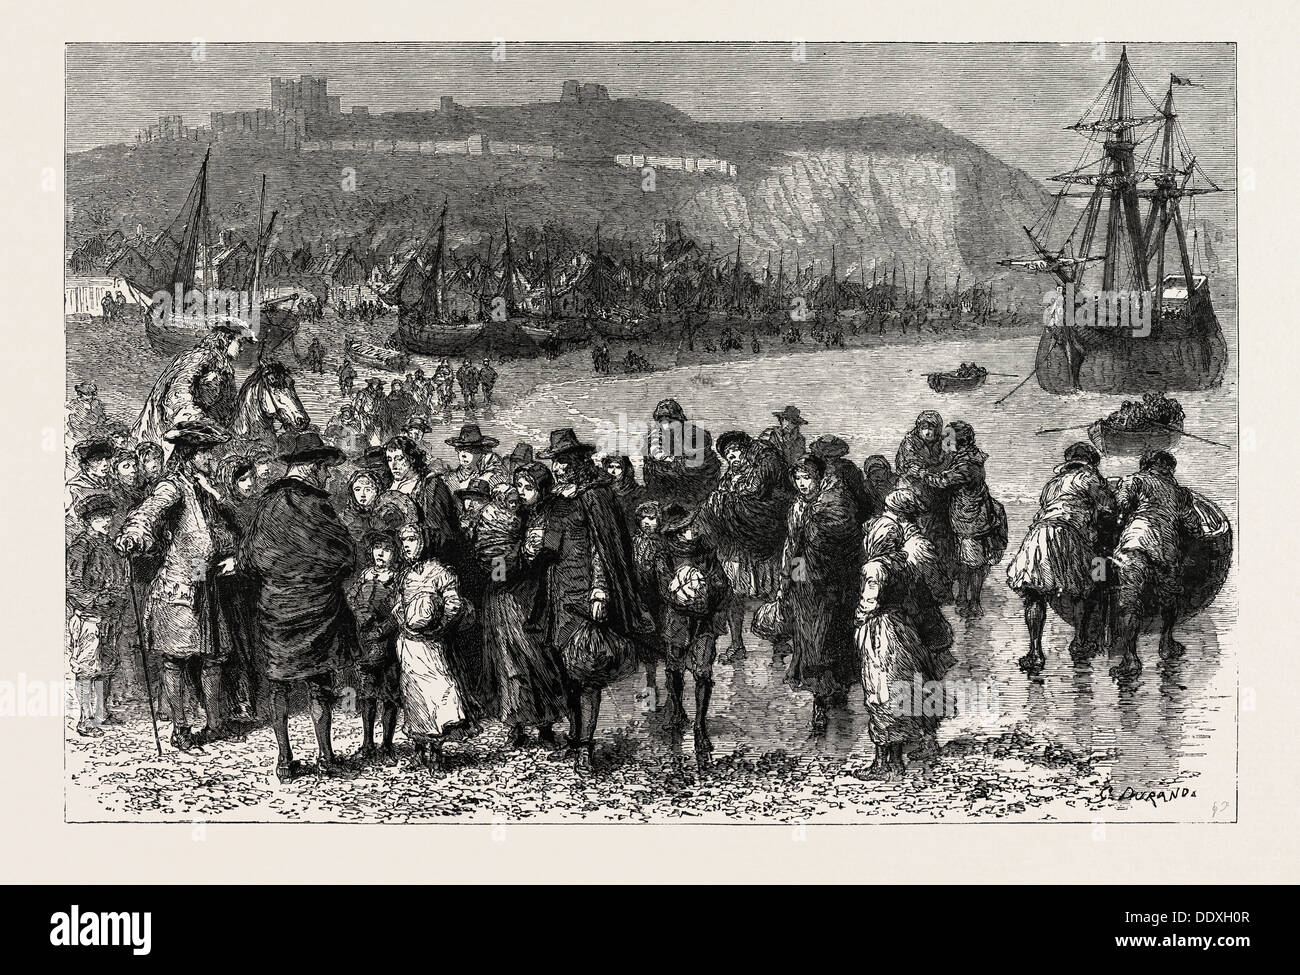 FRENCH HUGUENOT REFUGEES LANDING AT DOVER IN 1685. After the Revocation of the Edict of Nantes - Stock Image